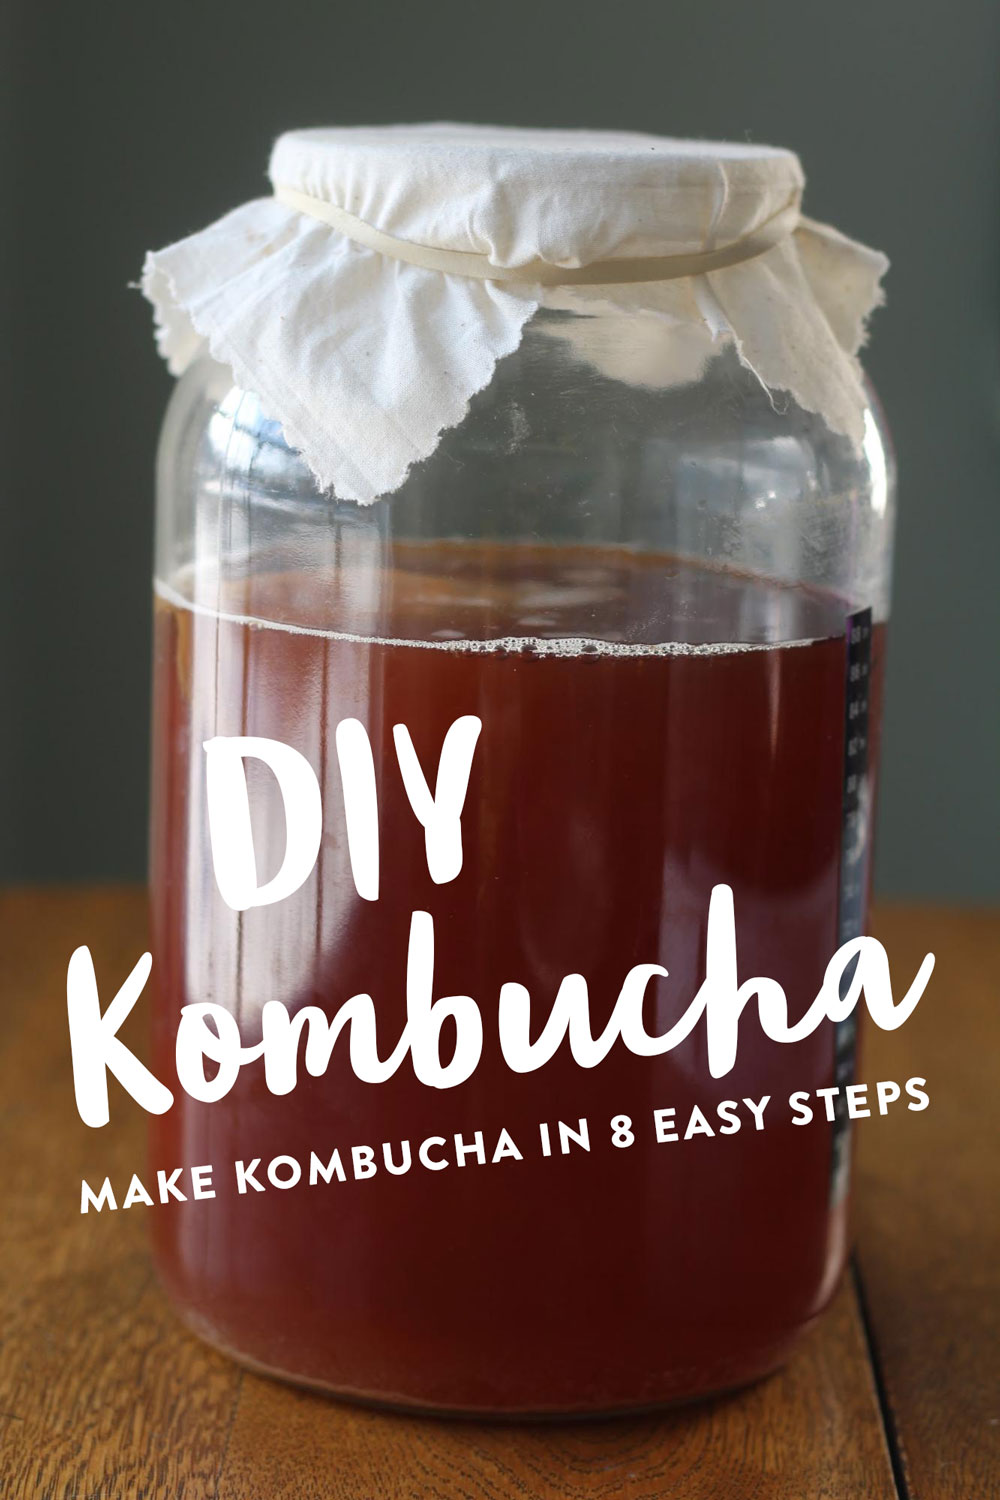 DIY kombucha in 8 easy steps